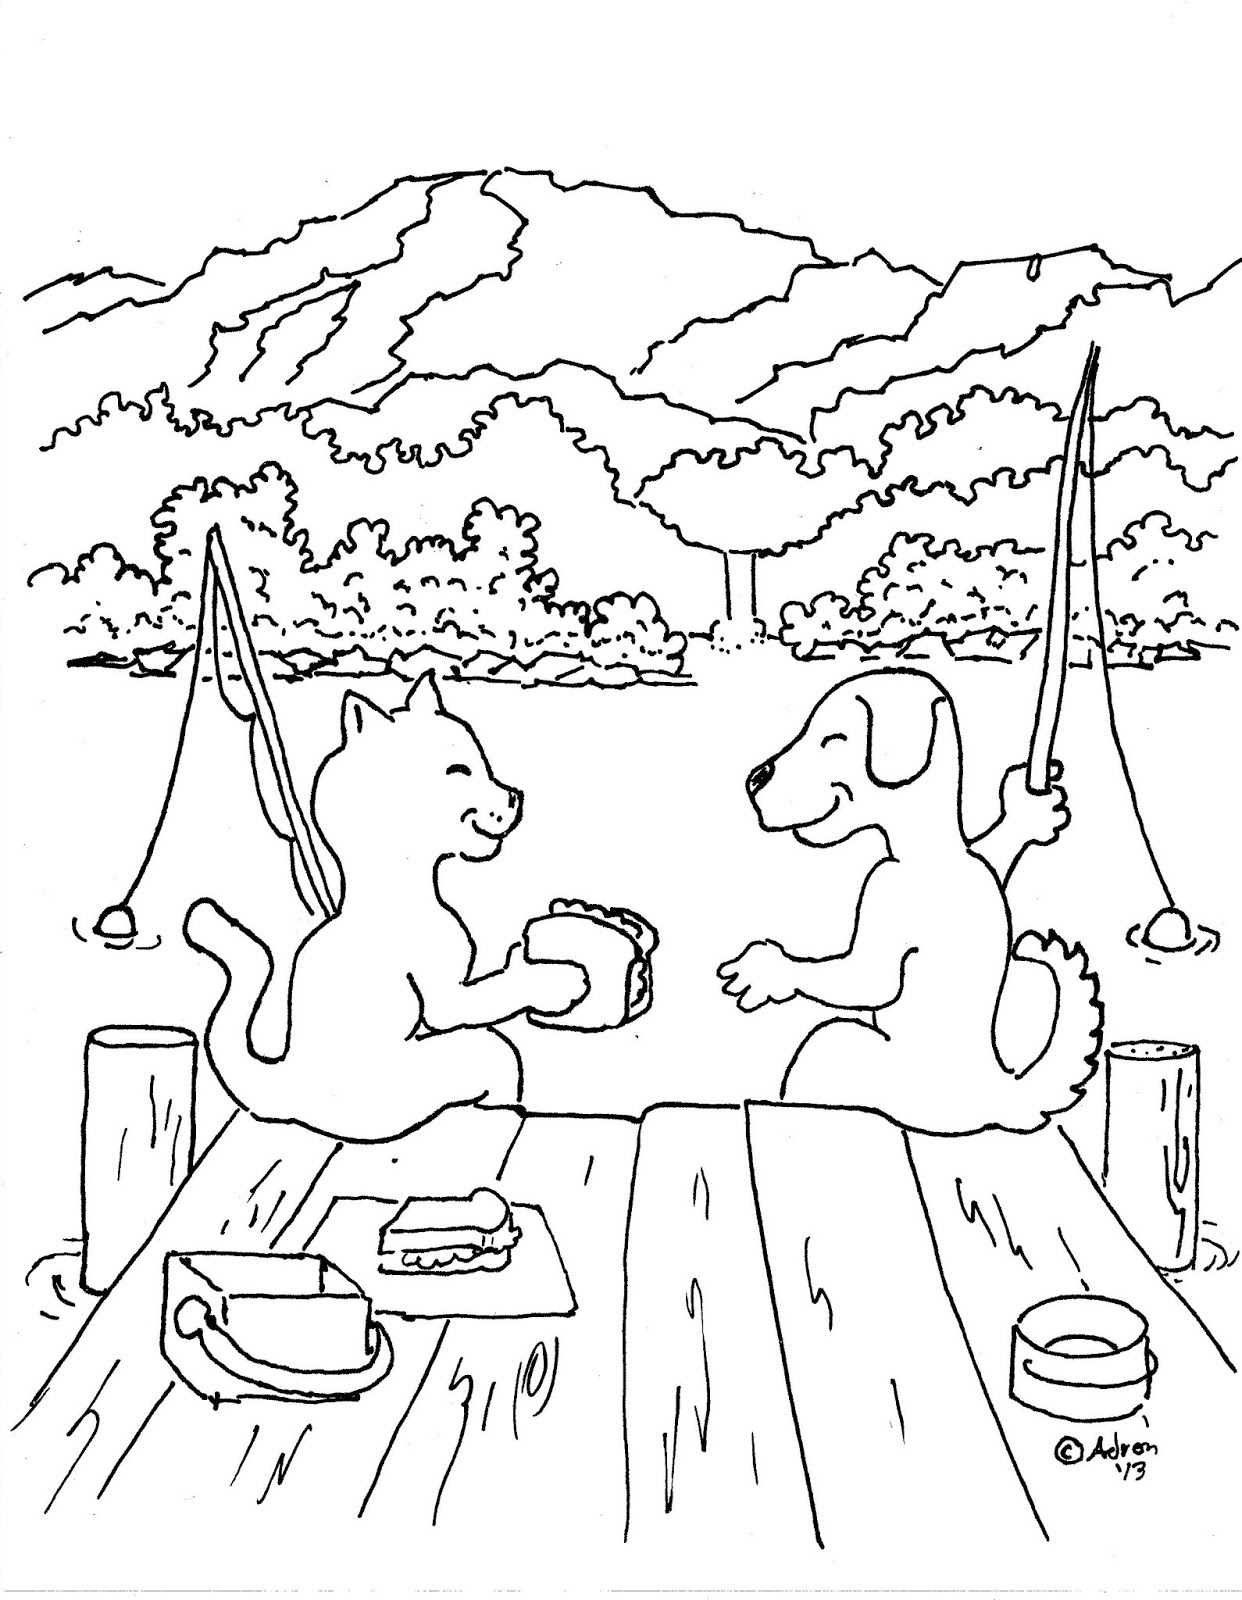 7500 Top Coloring Pages For Cats And Dogs Images & Pictures In HD